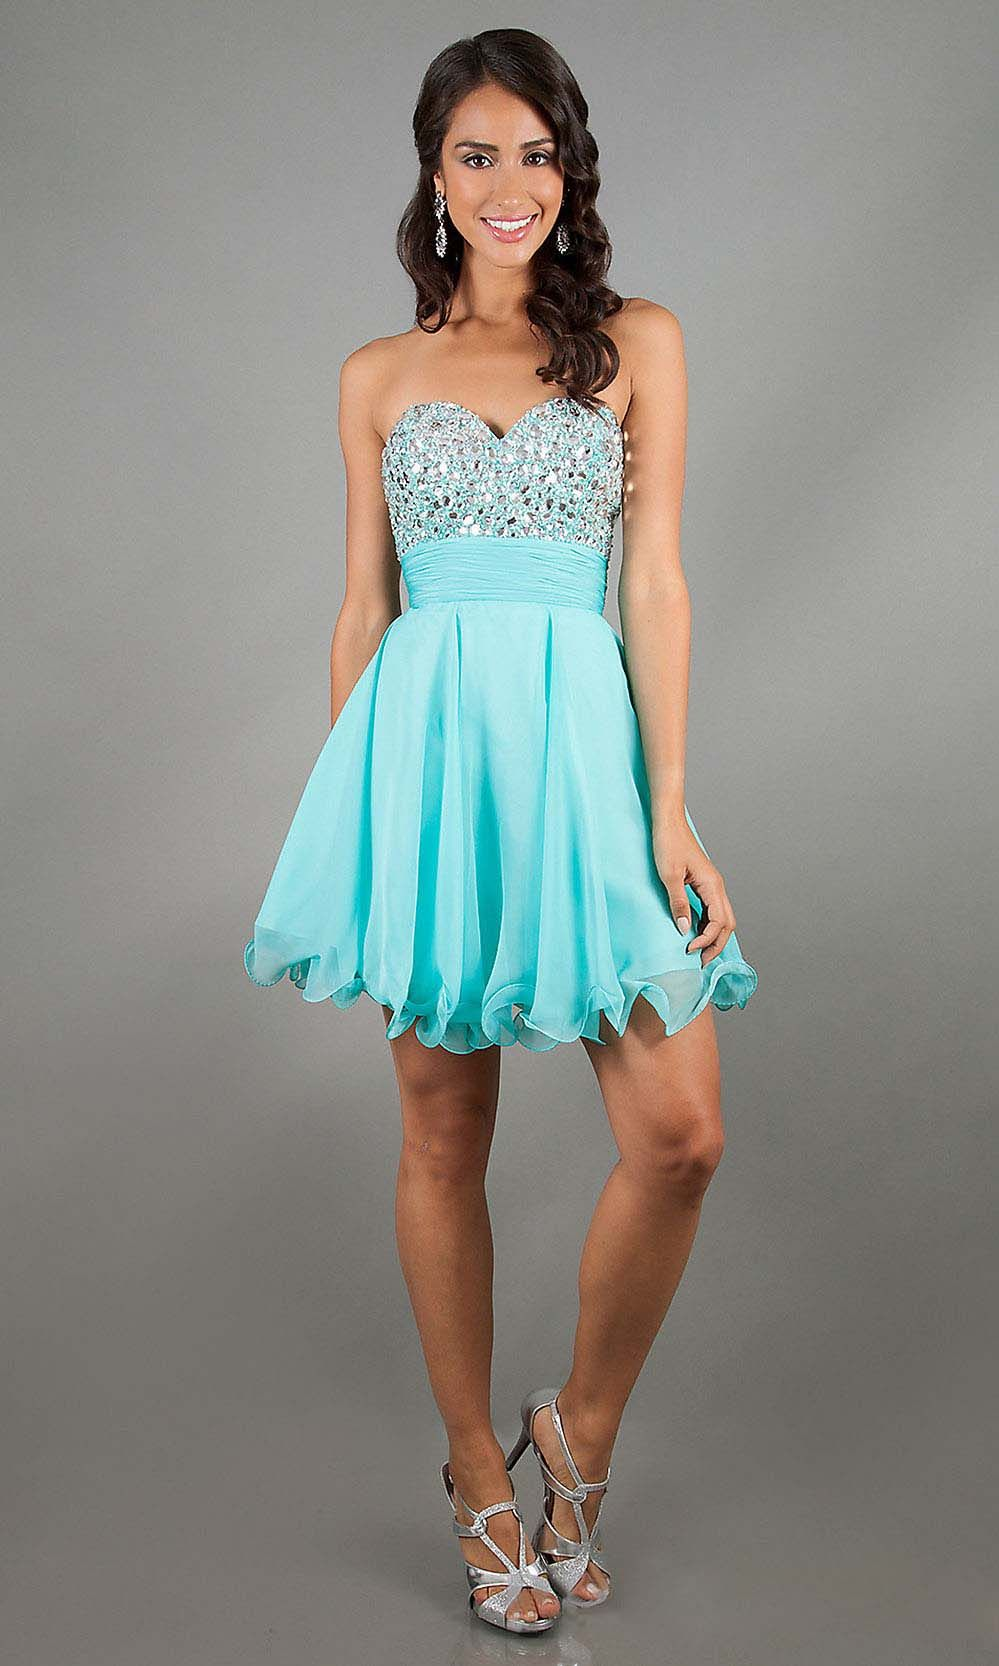 Okbridaldress.com - tiffany blue prom dress, affordable prom ...